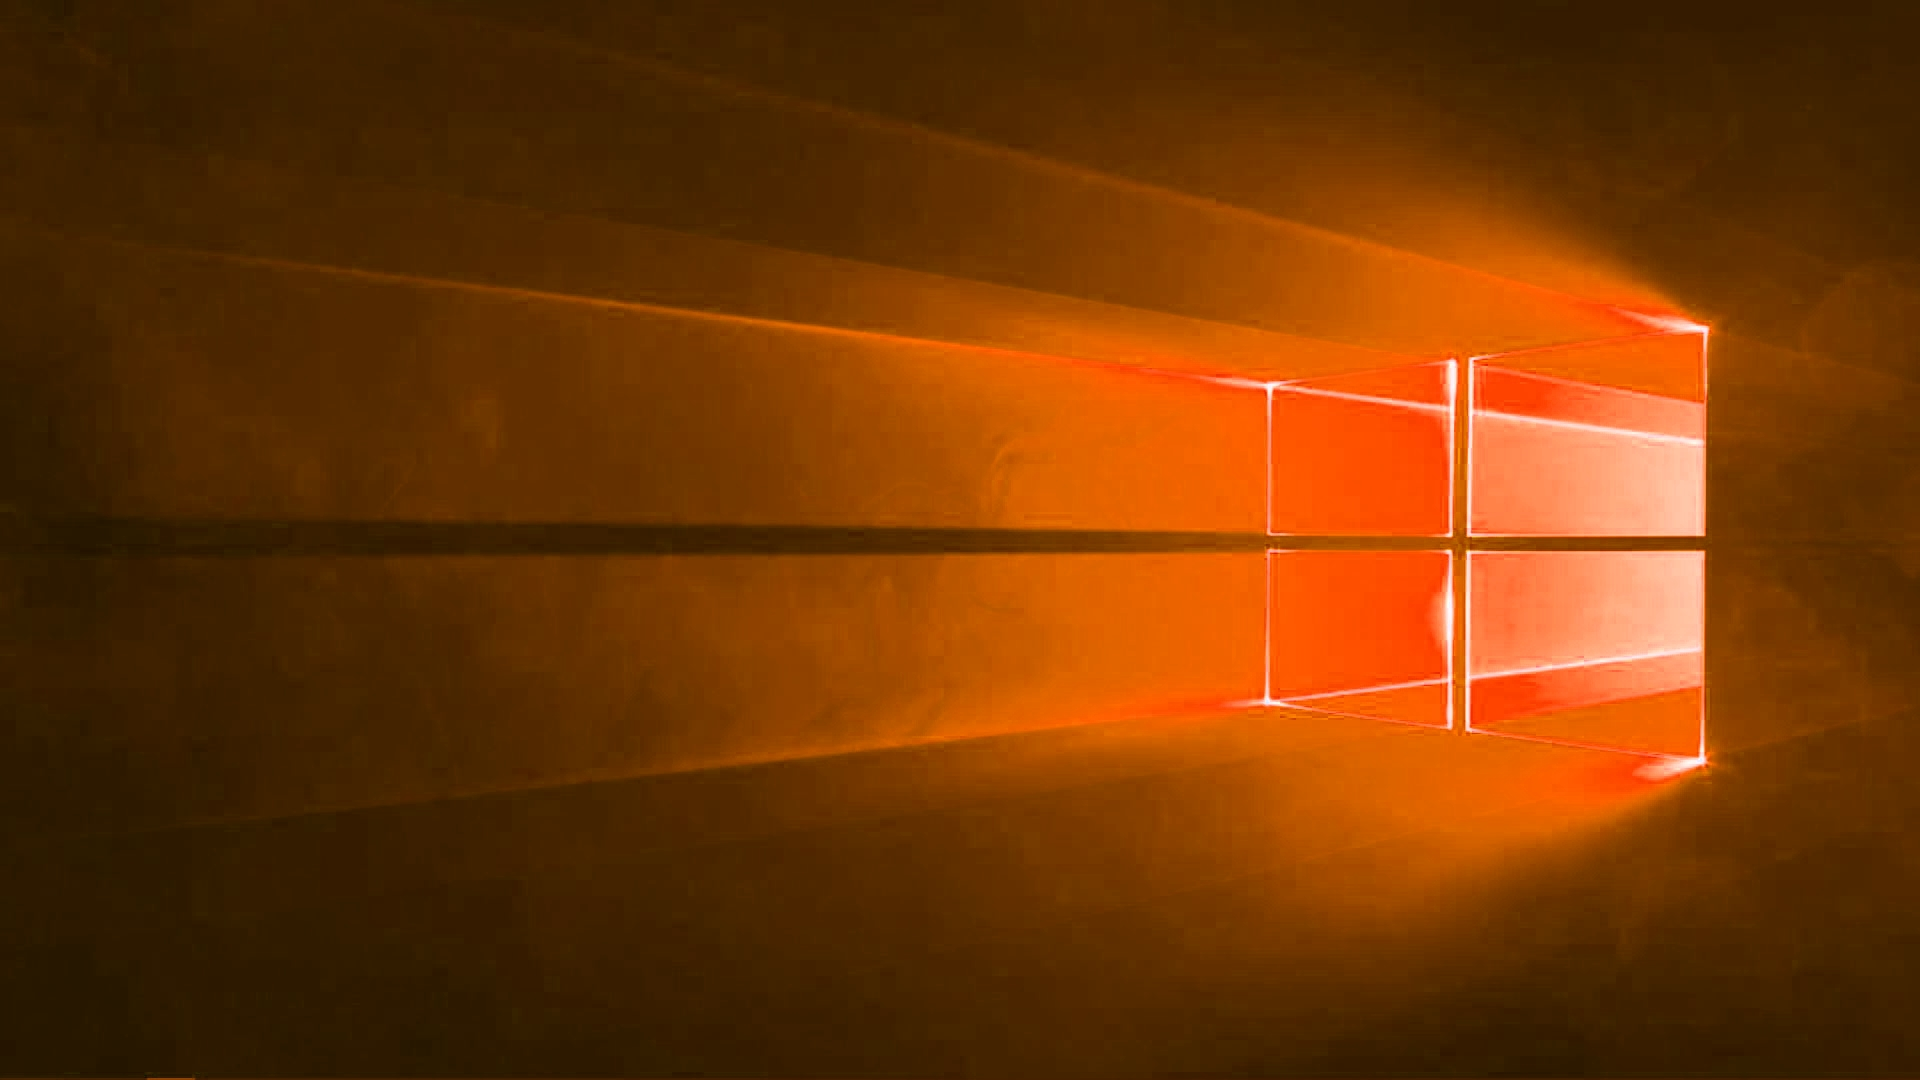 Windows 10 laranja